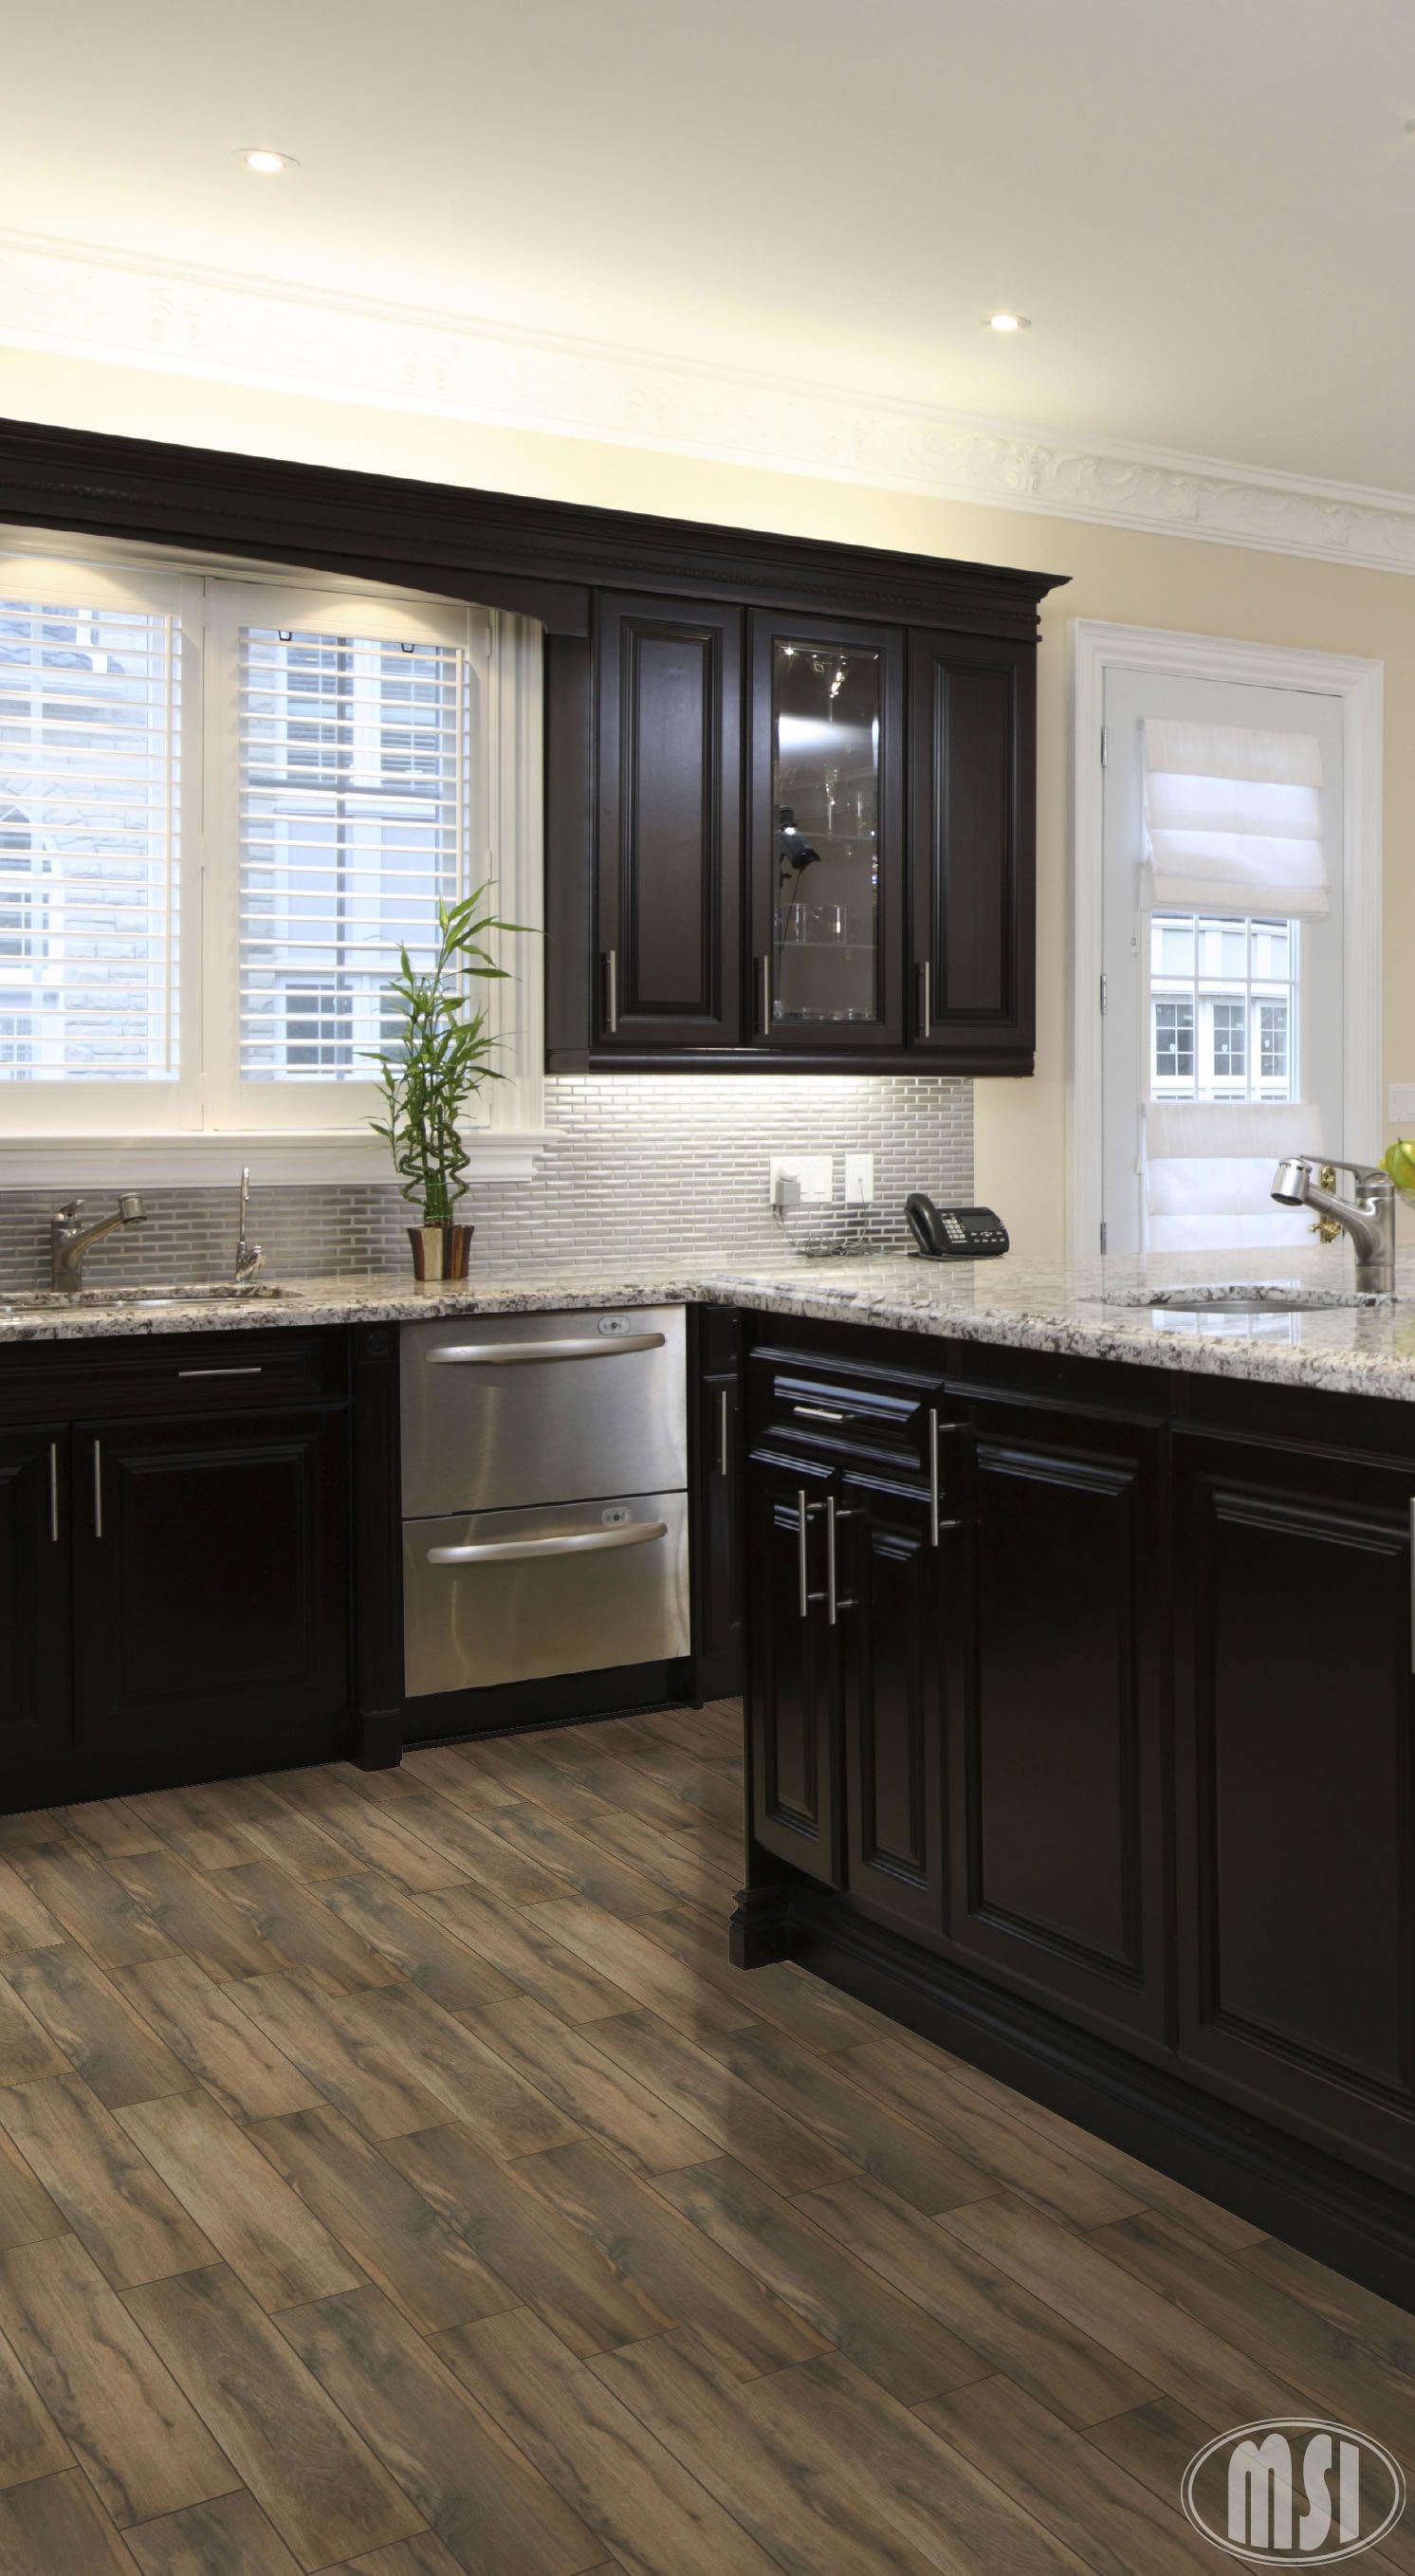 Kitchen Ideas Dark Cabinets.Moon White Kitchen Dark Kitchen Cabinets Kitchen Cabinets Kitchen